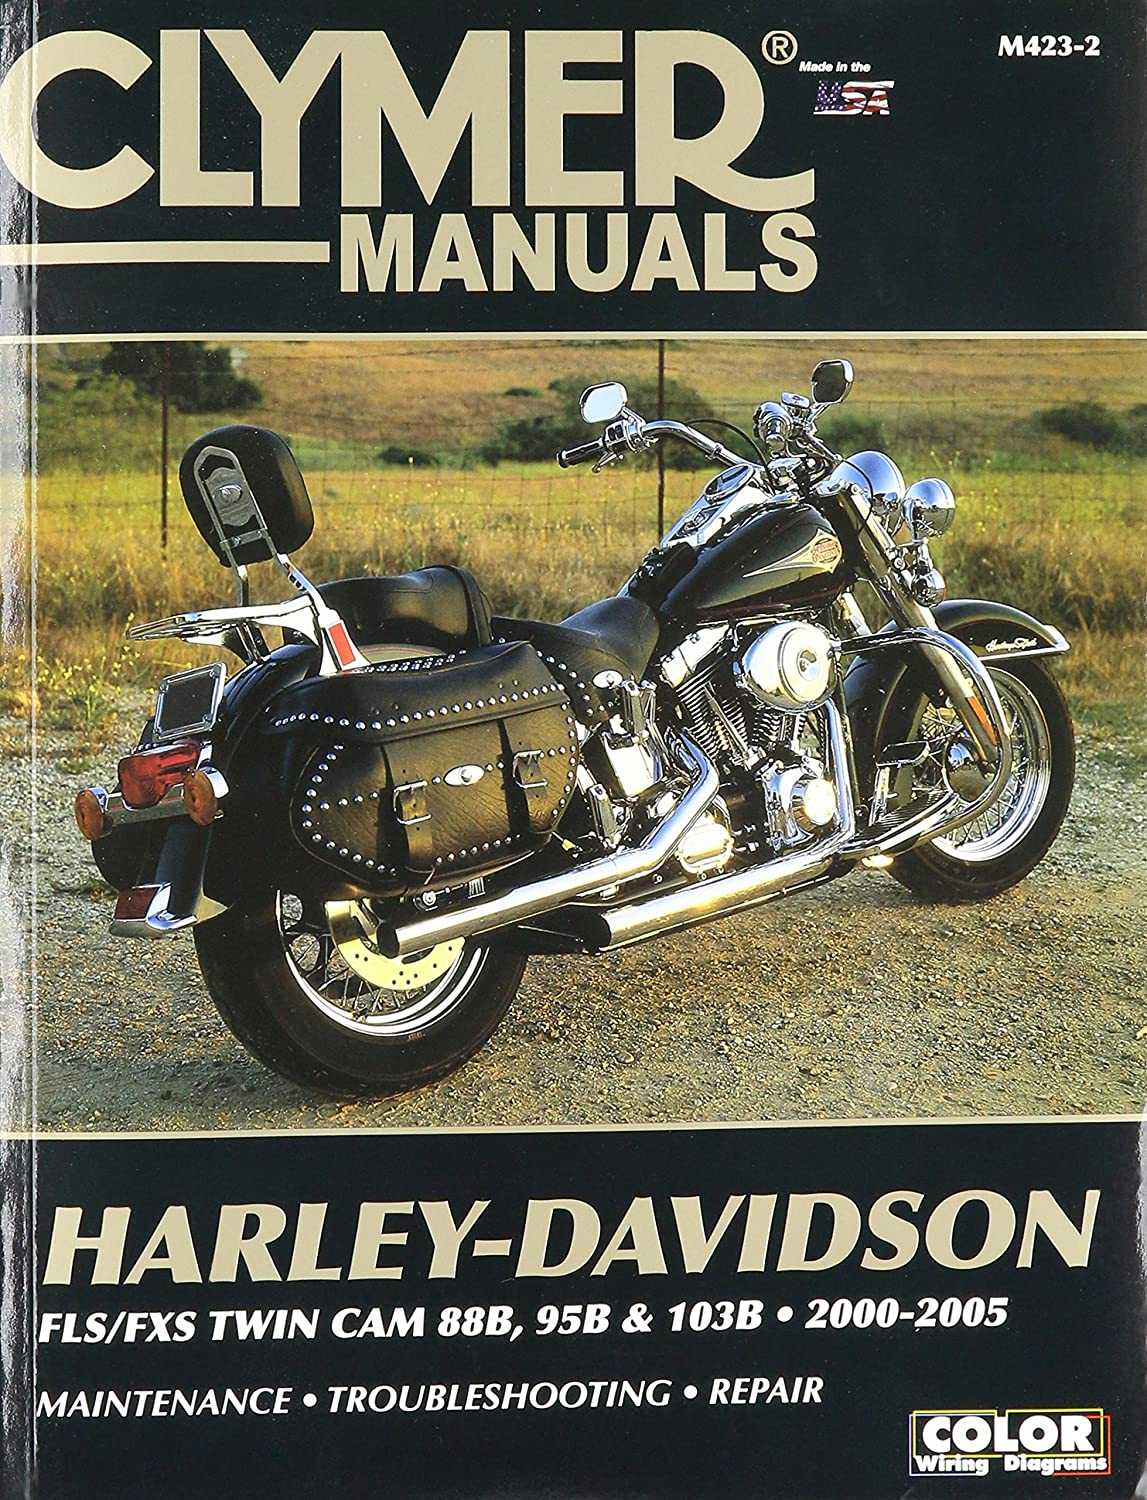 Clymer Repair Manual For Harley Softail Twin Cam 88 00 Harleydavidson Motorcycles This Diagram Provides A Parts Detail 05 Automotive